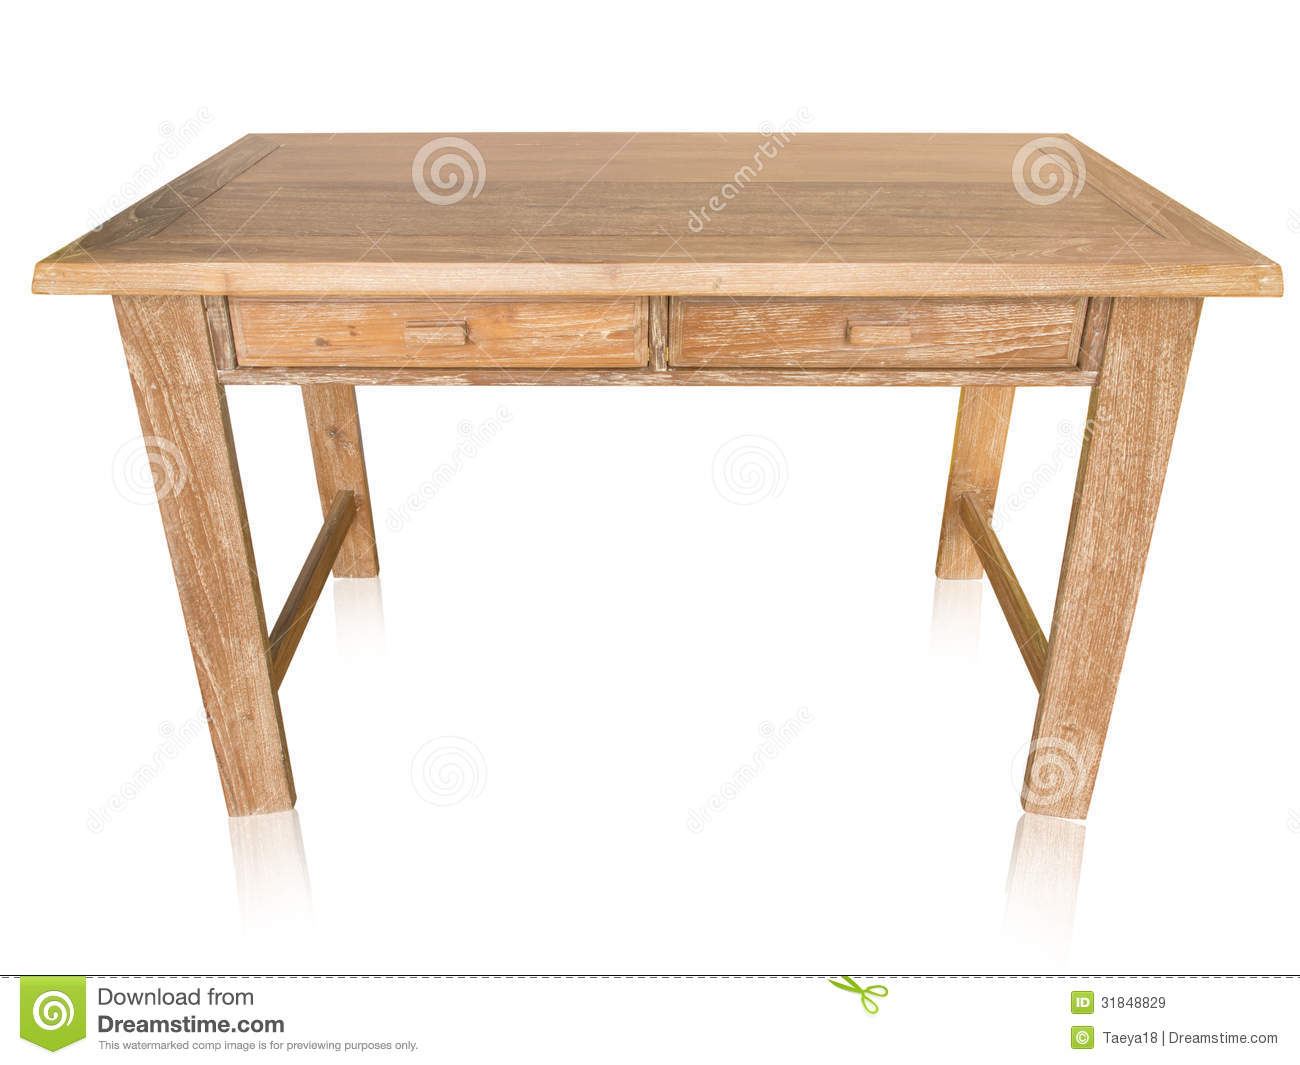 Marvelous photograph of Vintage Wood Table Royalty Free Stock Images Image: 31848829 with #84A625 color and 1300x1065 pixels